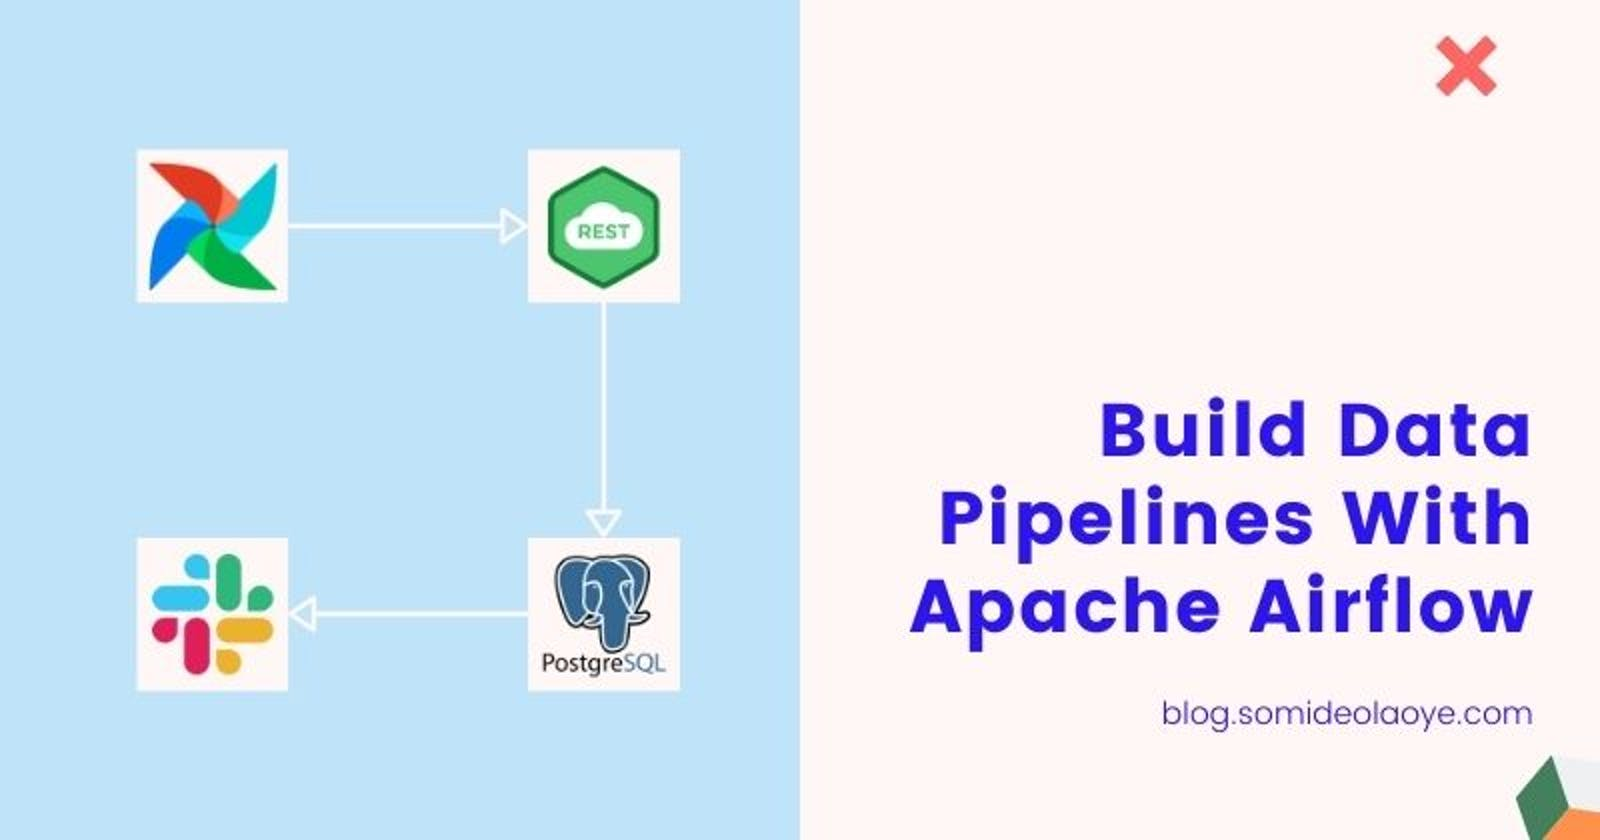 Building Pipeline For Data Harvesting With Apache Airflow